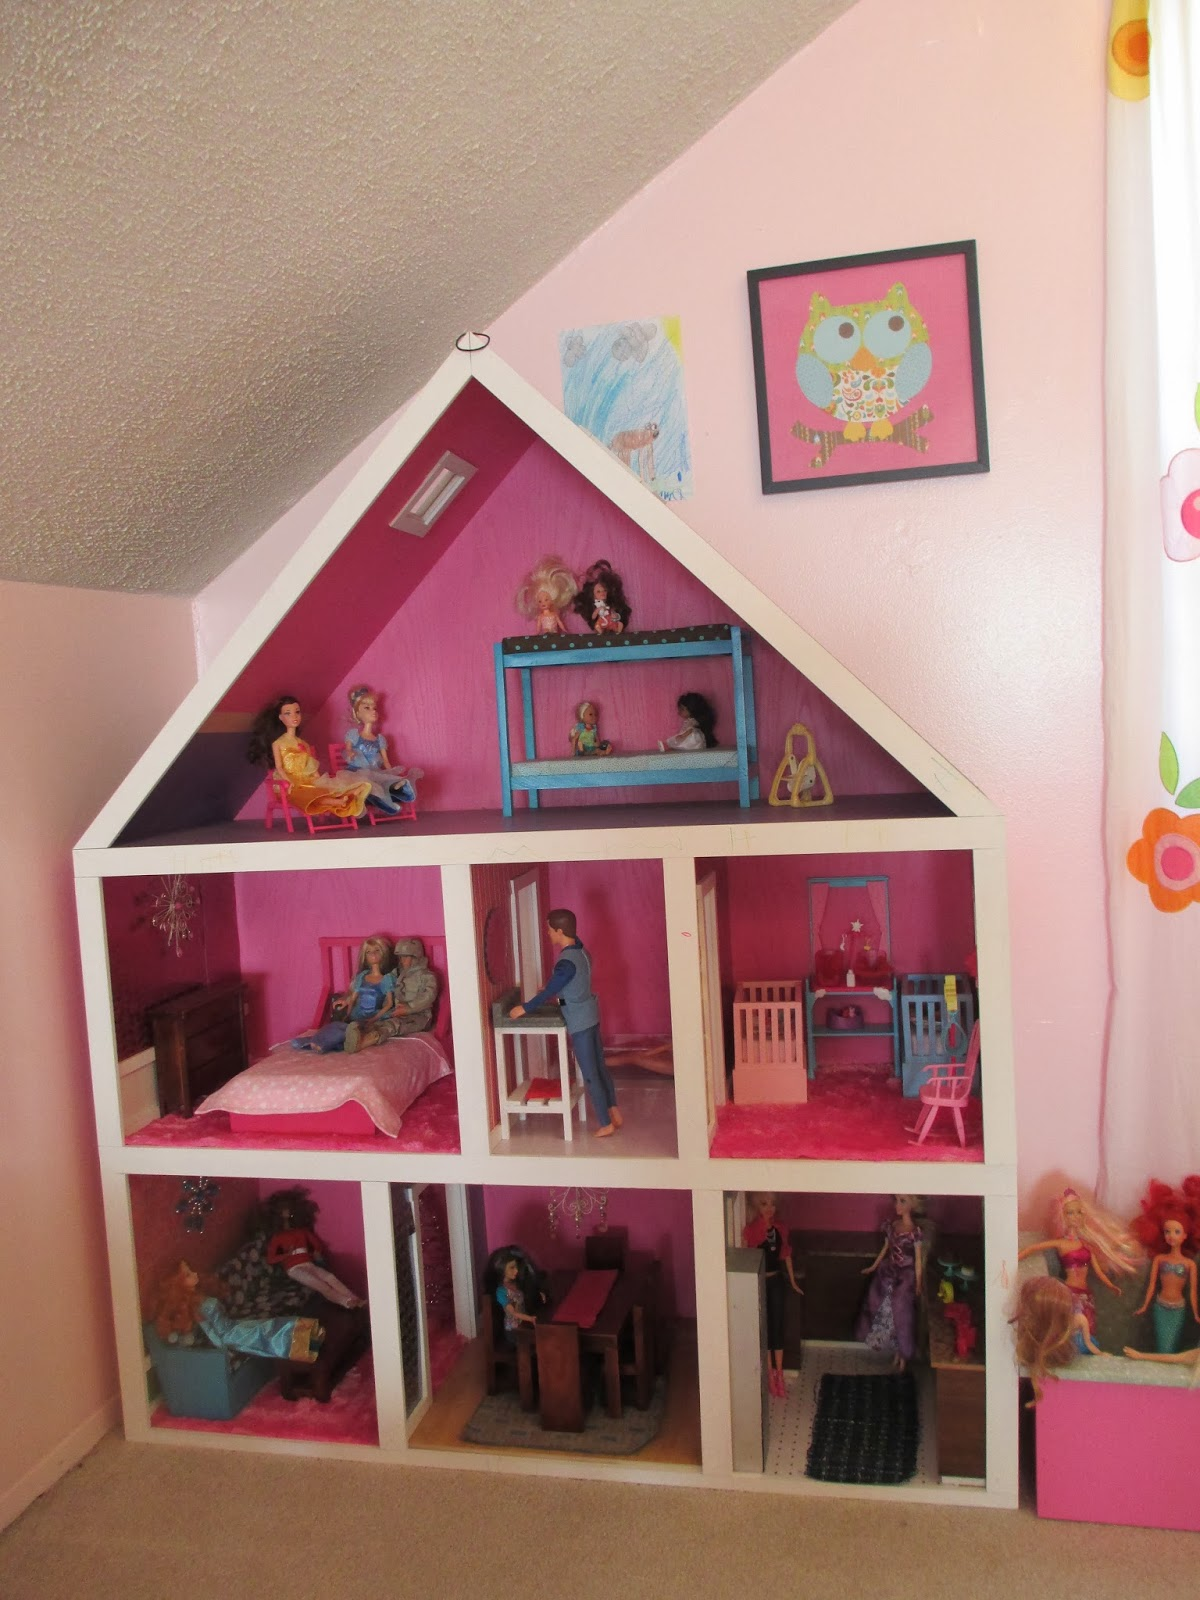 Kruse 39 s workshop building for barbie on a budget for How to start building a house